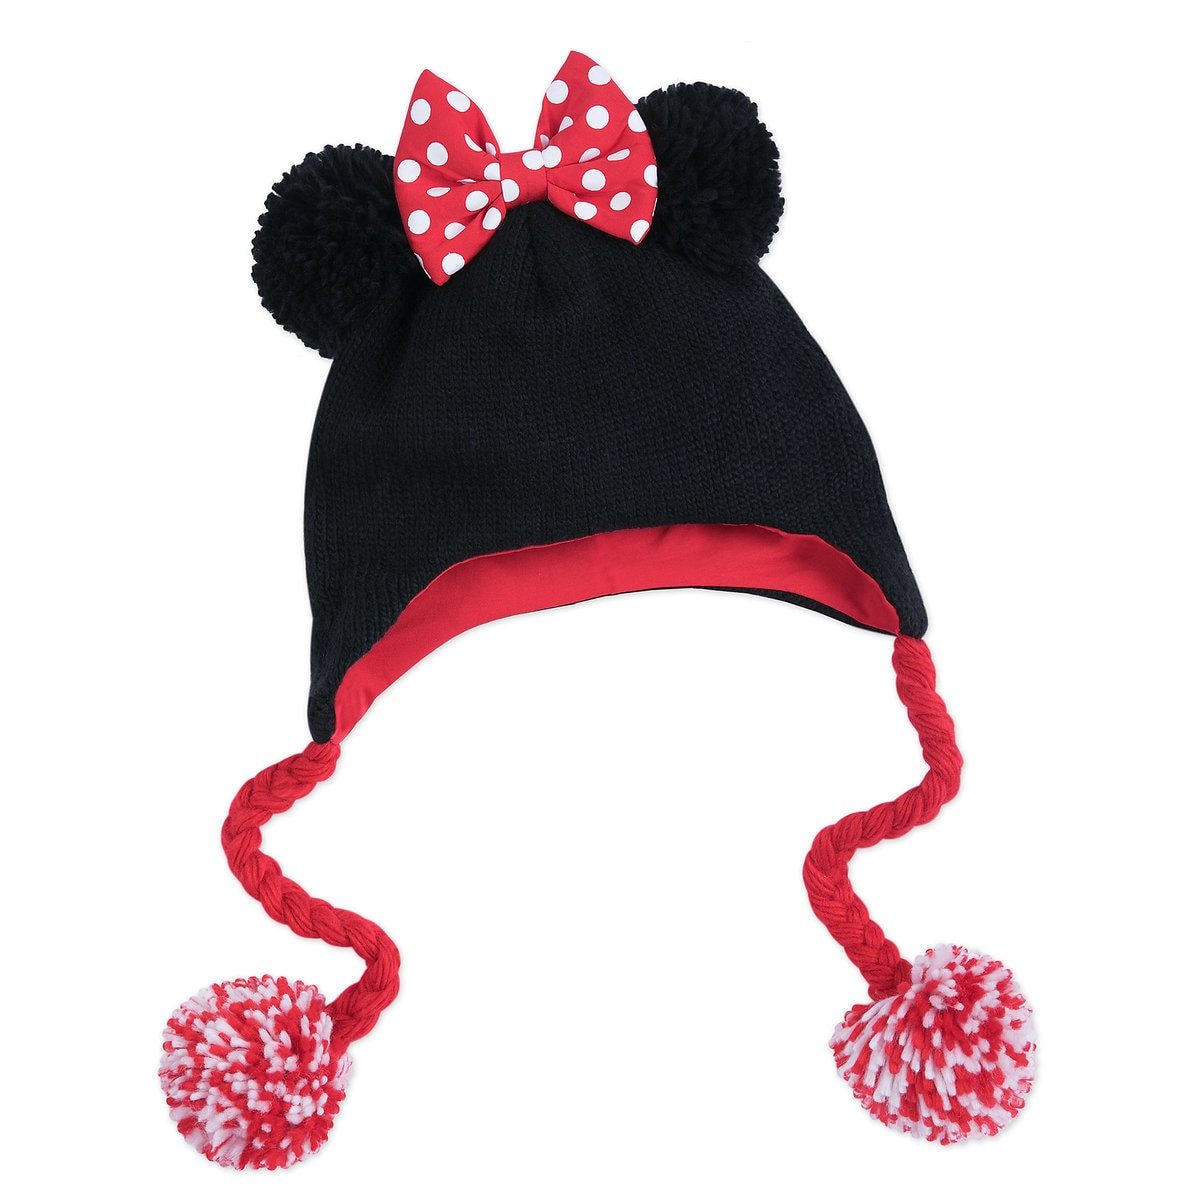 9154ebcf53d Product Image of Minnie Mouse Knit Hat for Adults   1